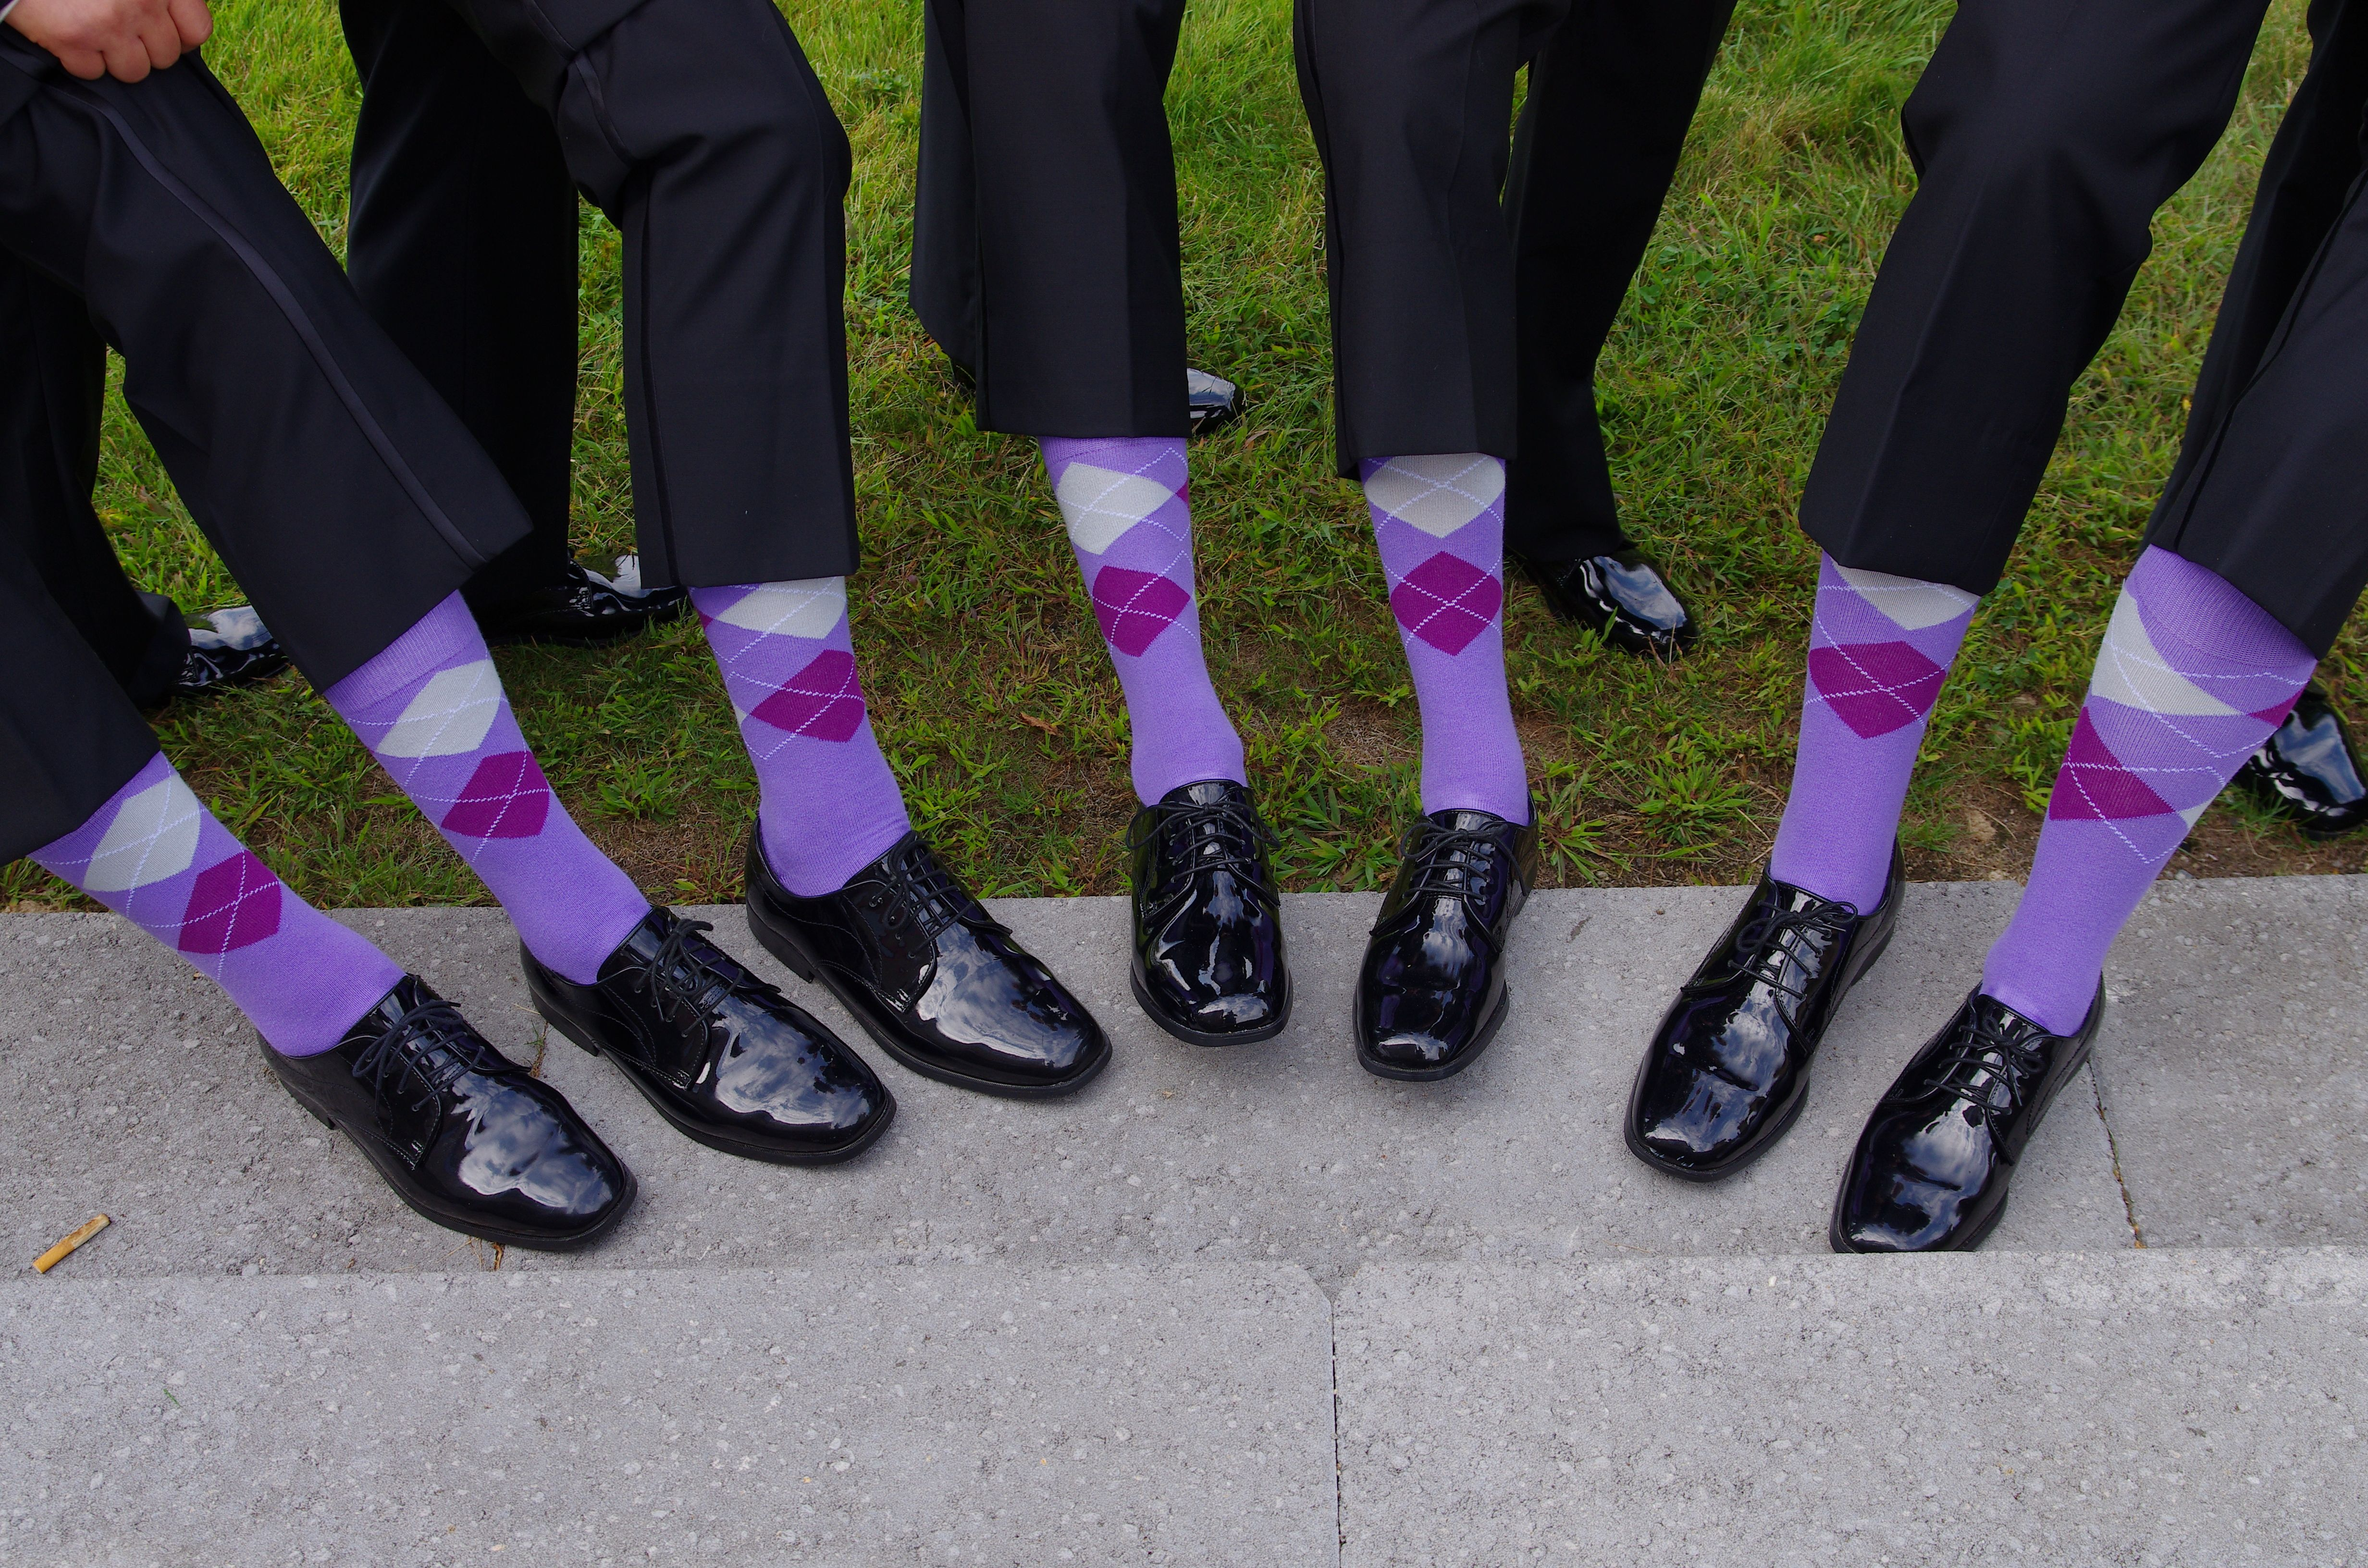 socks for groom | ArgyleSock.us Customers Pictures (Wedding Picture ...